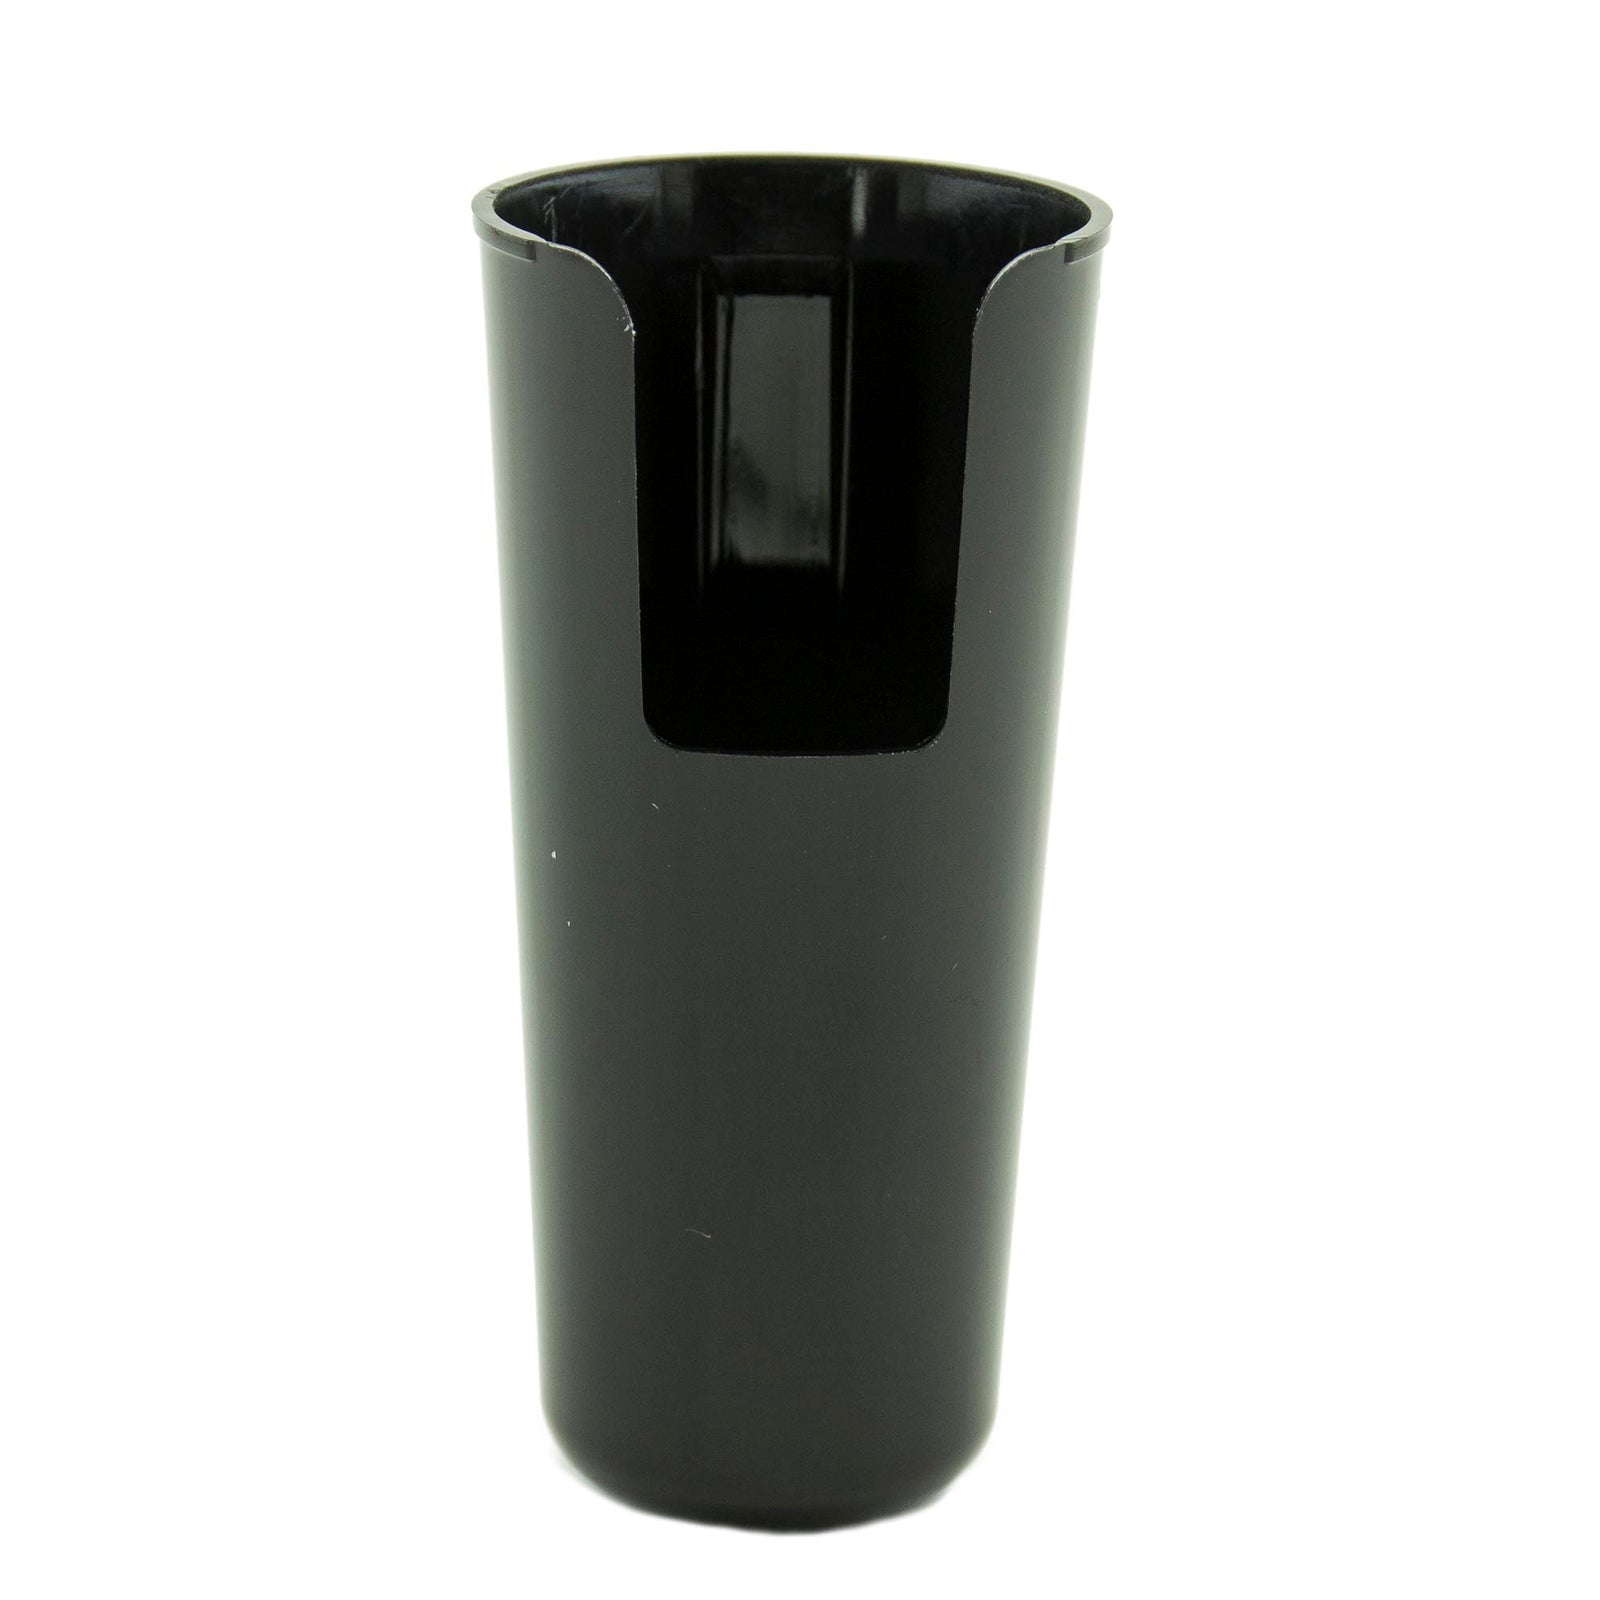 Yamaha BB Clarinet Mouthpiece Cap - Black Plastic